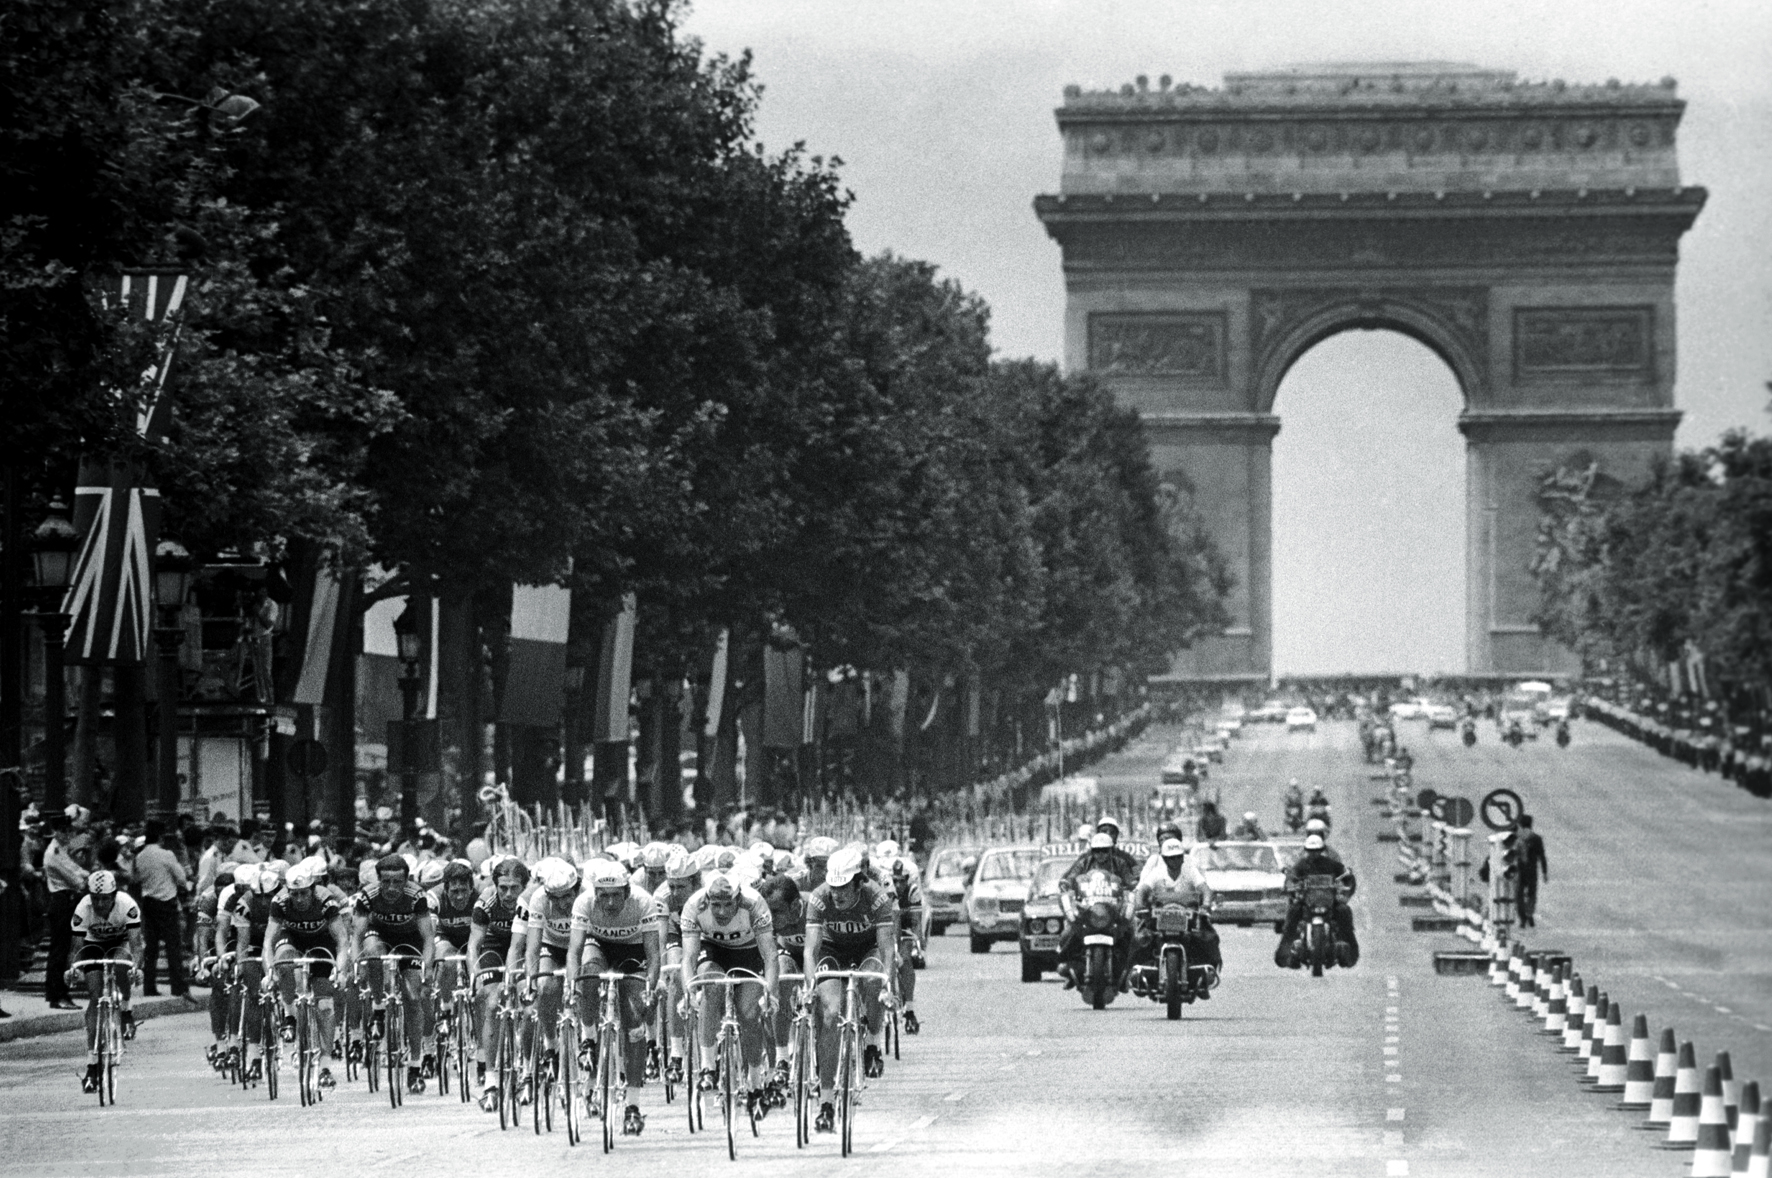 © Tour de France - The Golden Age 1940s-1970s, to be published by teNeues in July 2015, € 59,90 - www.teneues.com. Paris, Champs-Élysées, 22nd stage, 20 July 1975, Photo © Presse Sports